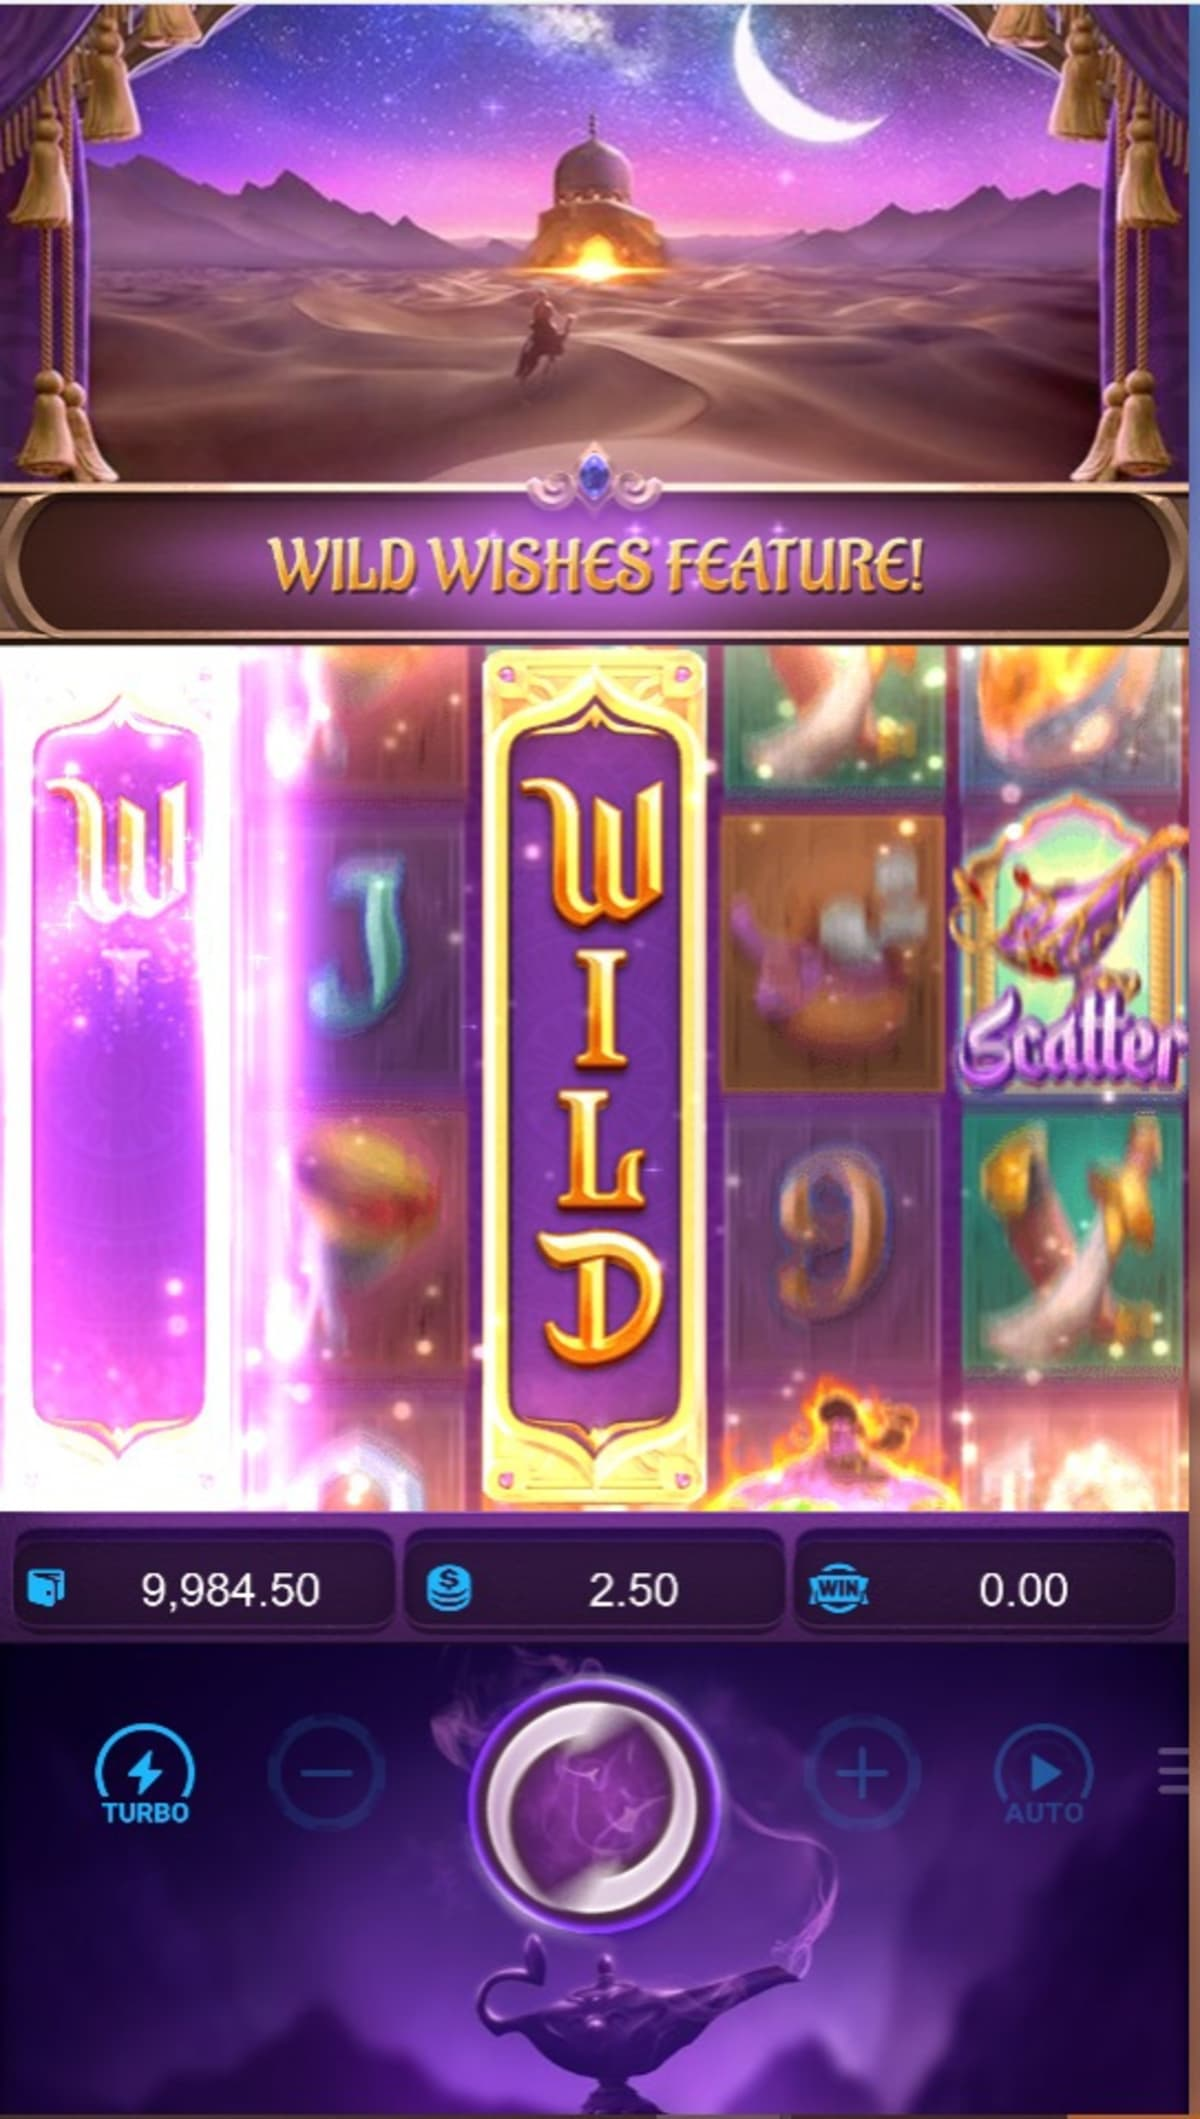 Wild Wishes Feature pic